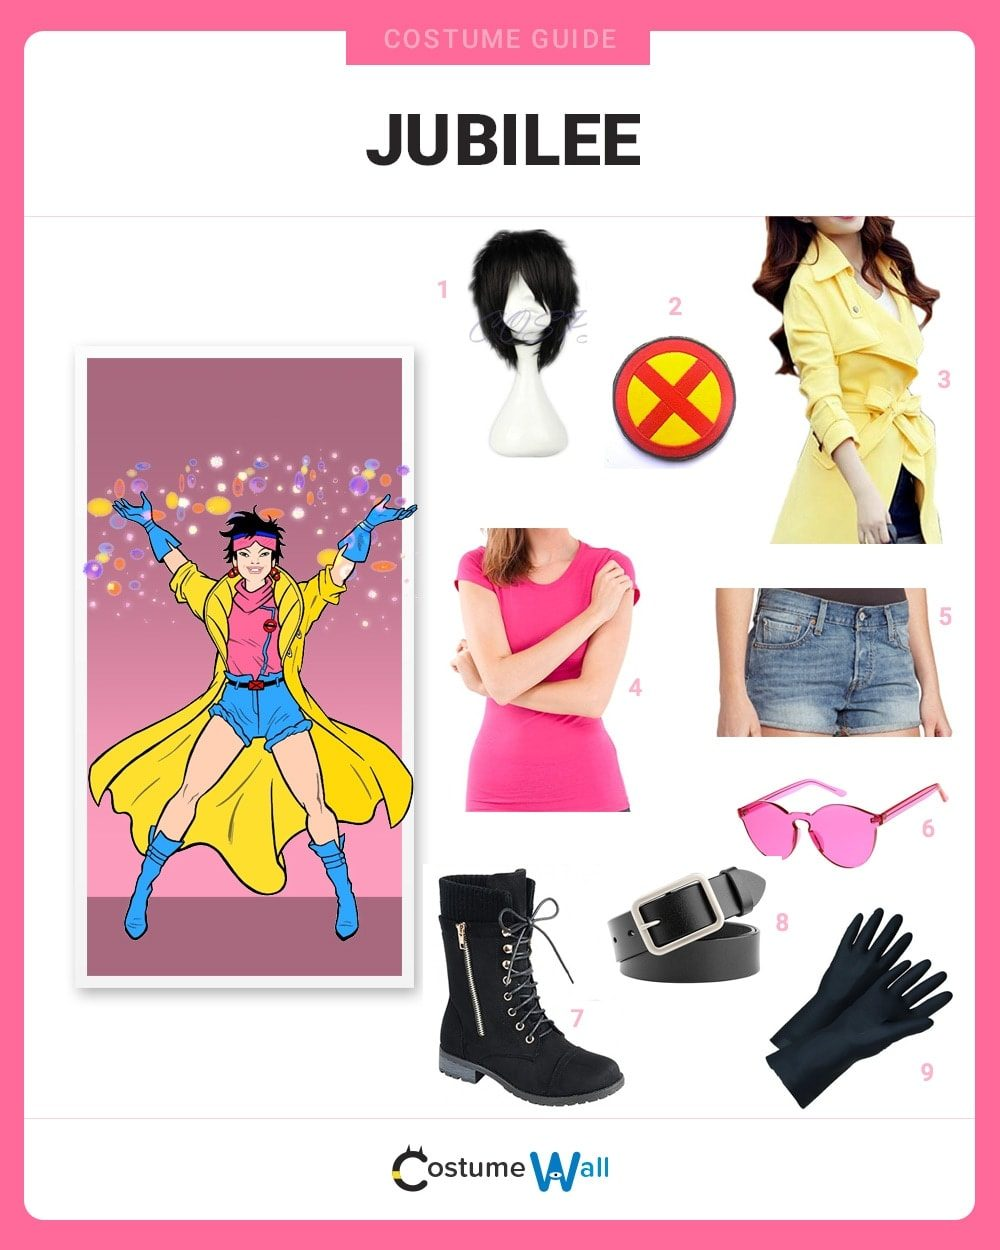 Jubilee Costume Guide